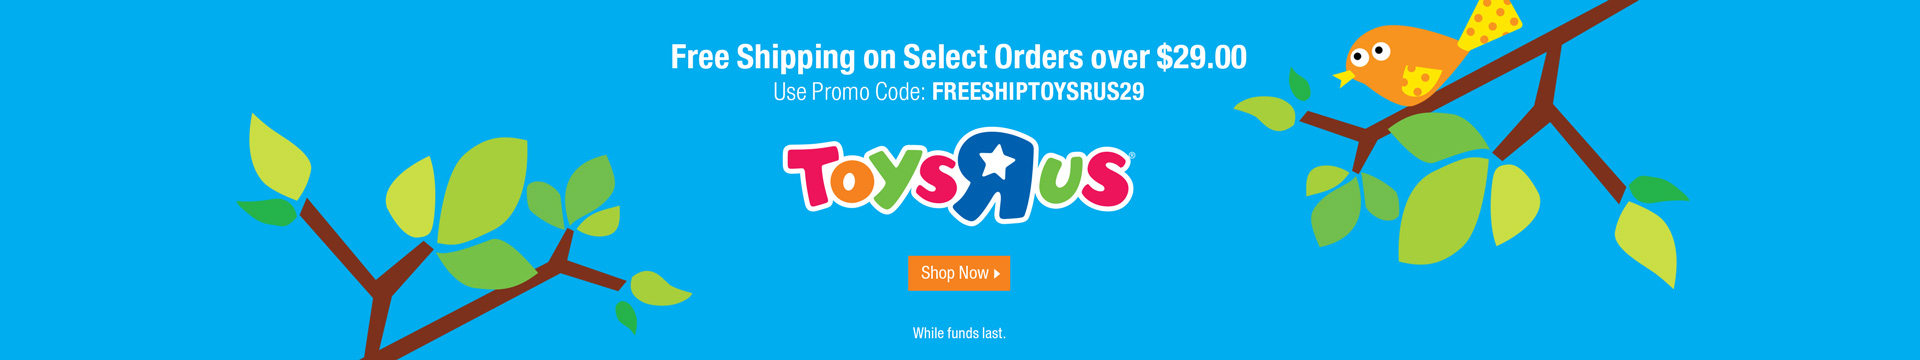 Free shipping on select orders over $29.00